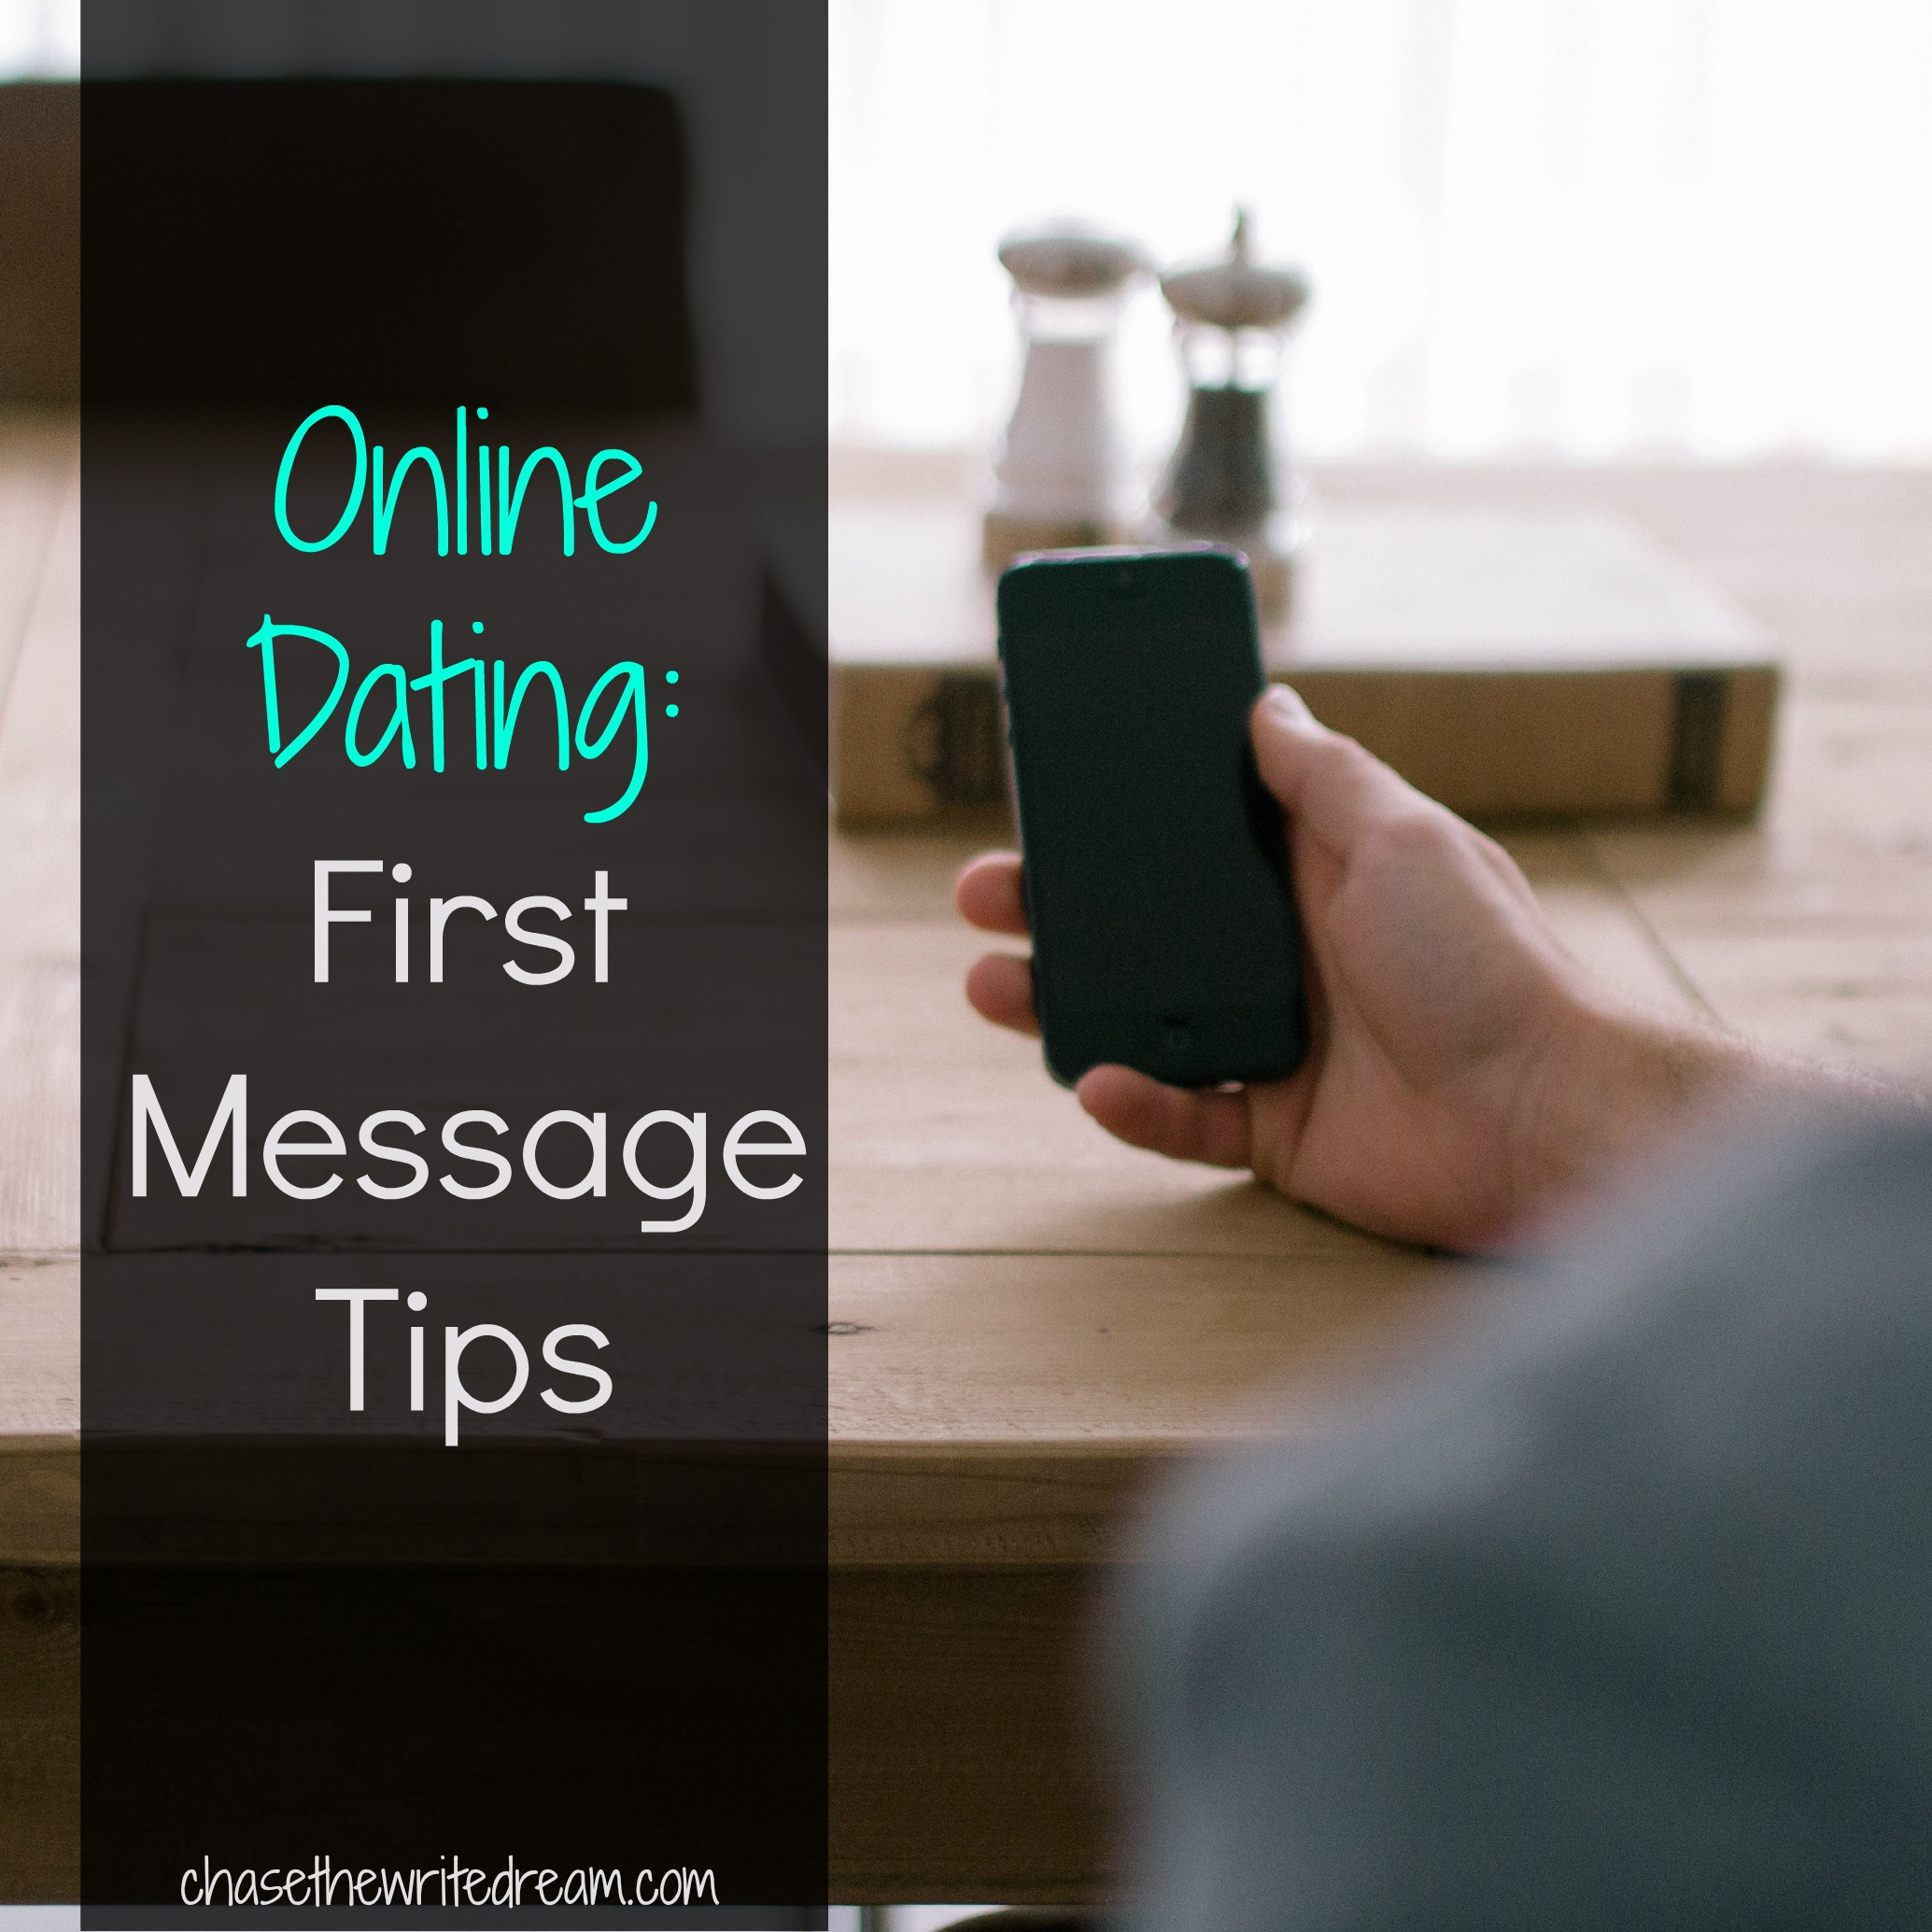 dating website best first message The best first message to send on a dating site  to find out, the dating site plenty of fish asked more than 1,000 people who had met their spouses online what their first message said.